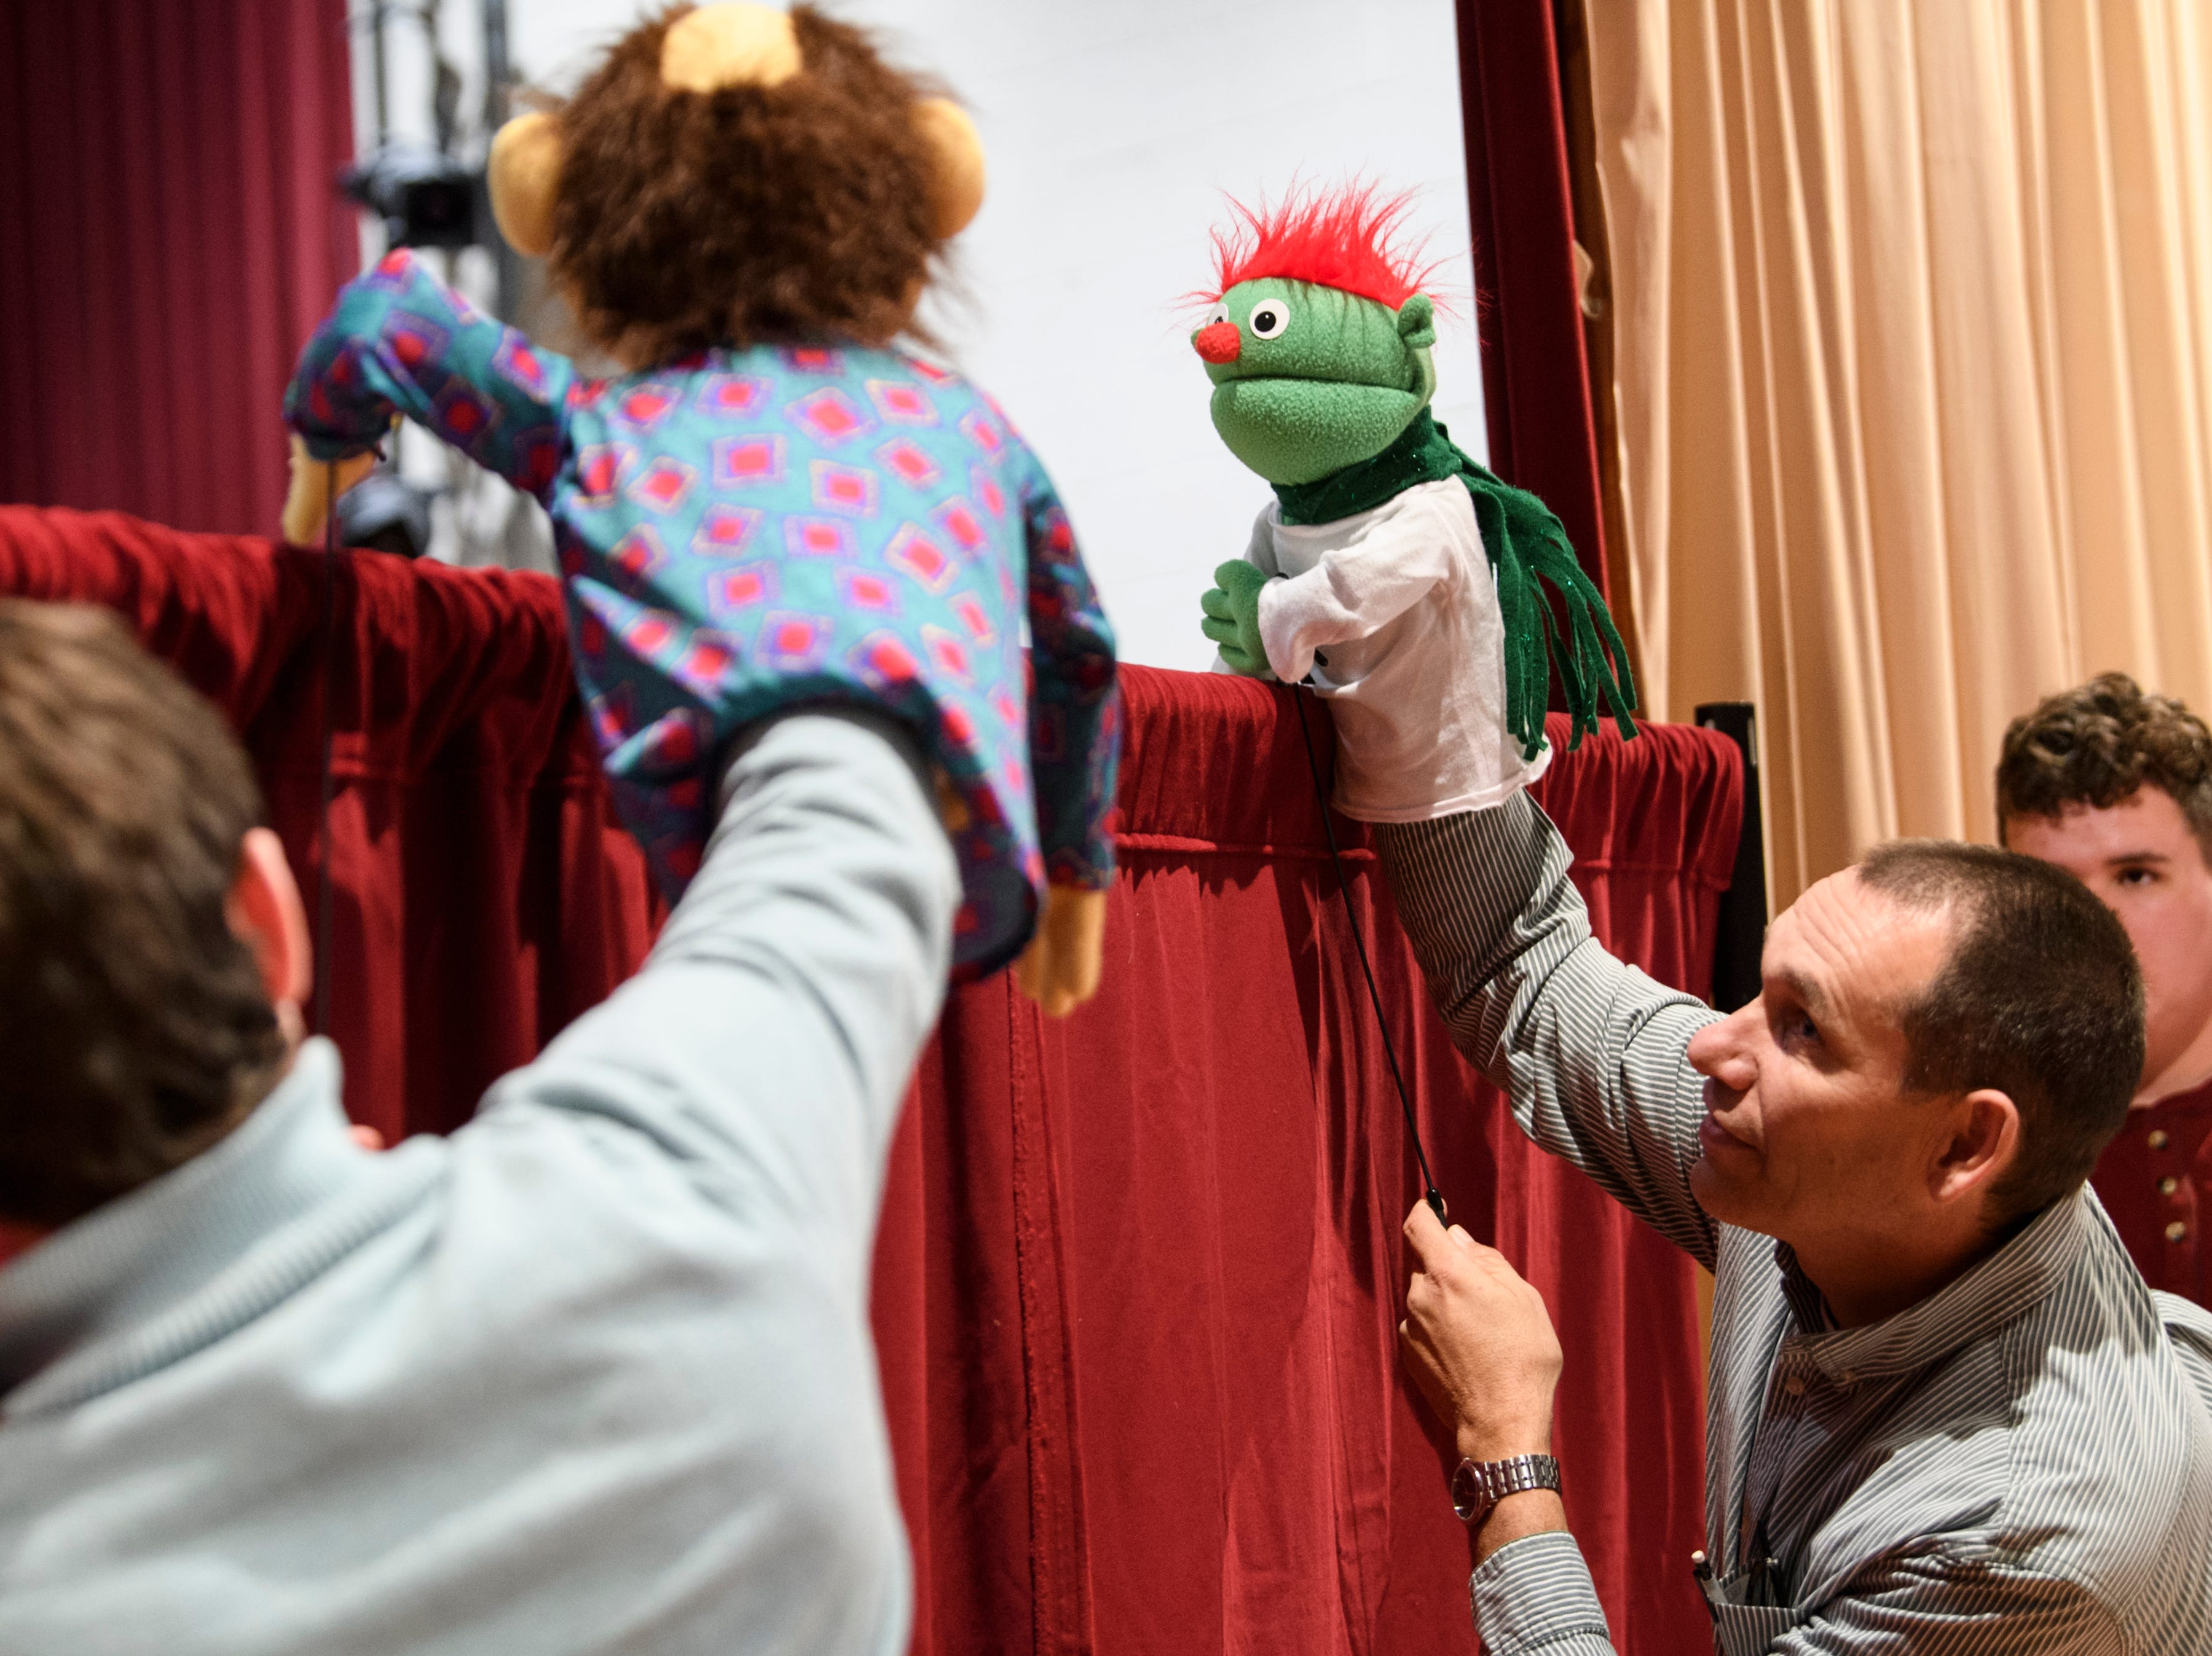 Ben Dalton, left, and Jim Bryan, right, put on a puppet show for children attending the Goodfellows Christmas party at South Middle School in Henderson, Ky., Sunday, Dec. 16, 2018.